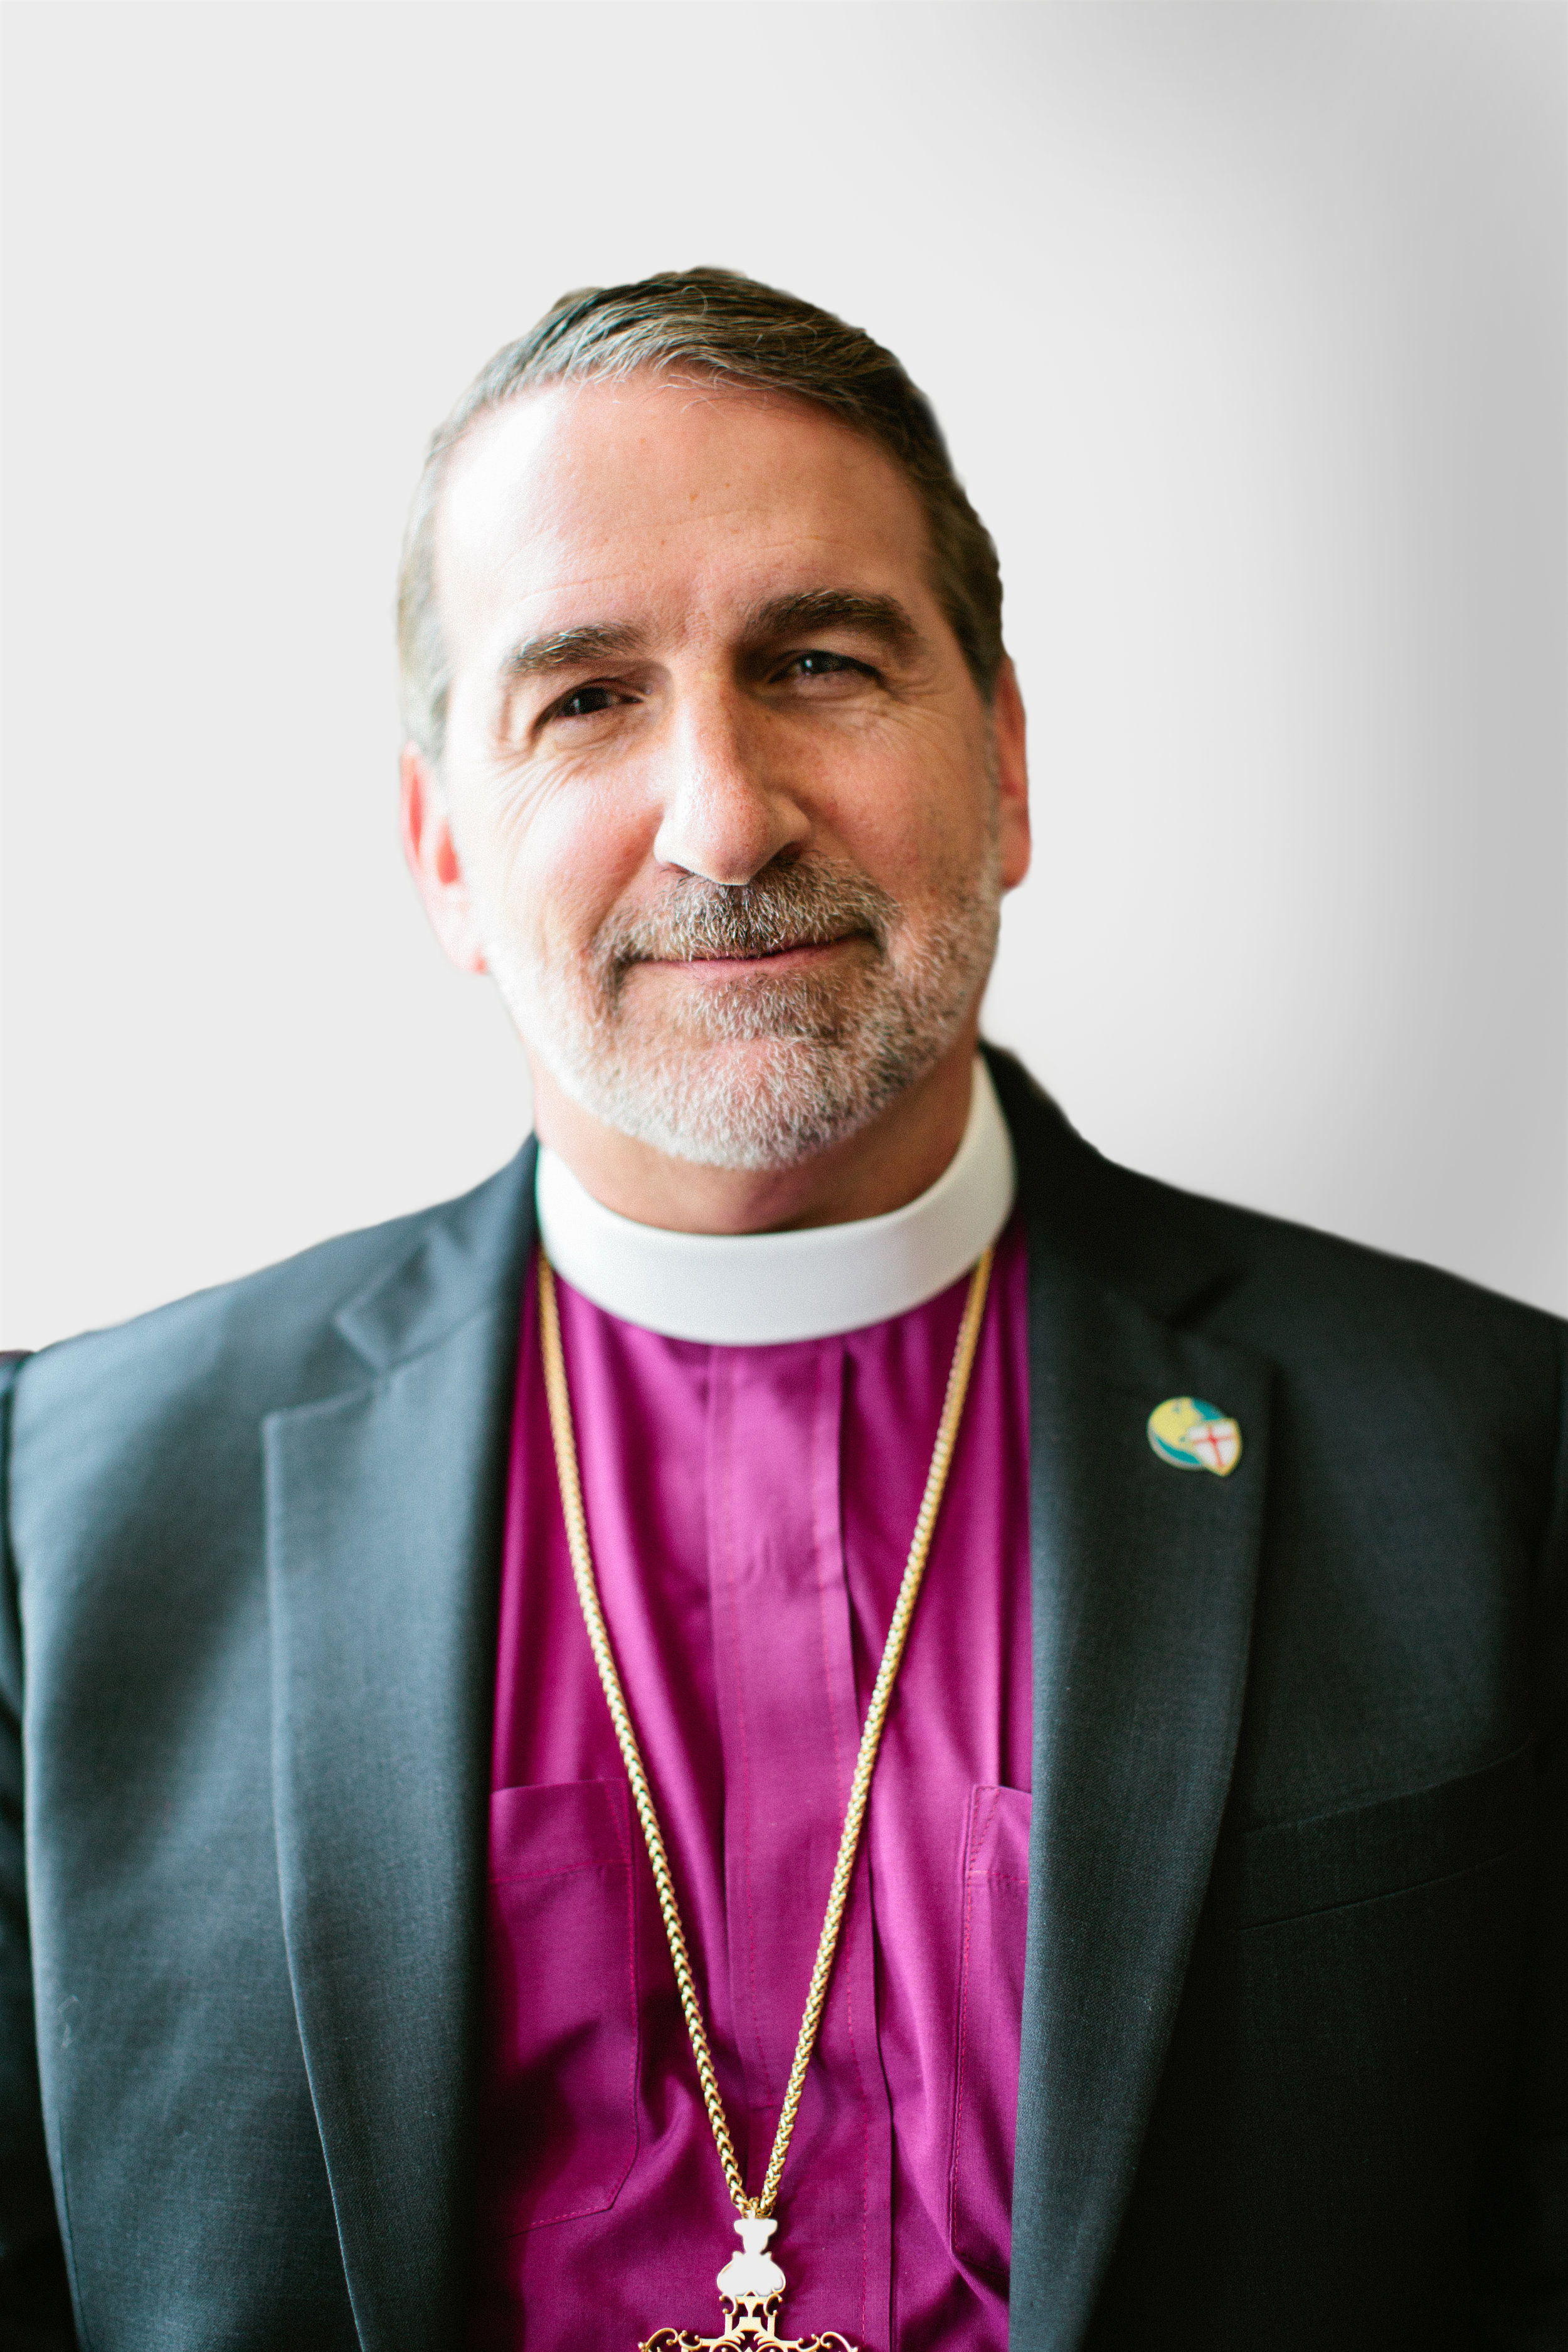 An Archbishop is a bishop of the highest rank who presides over a province within the Anglican Communion.